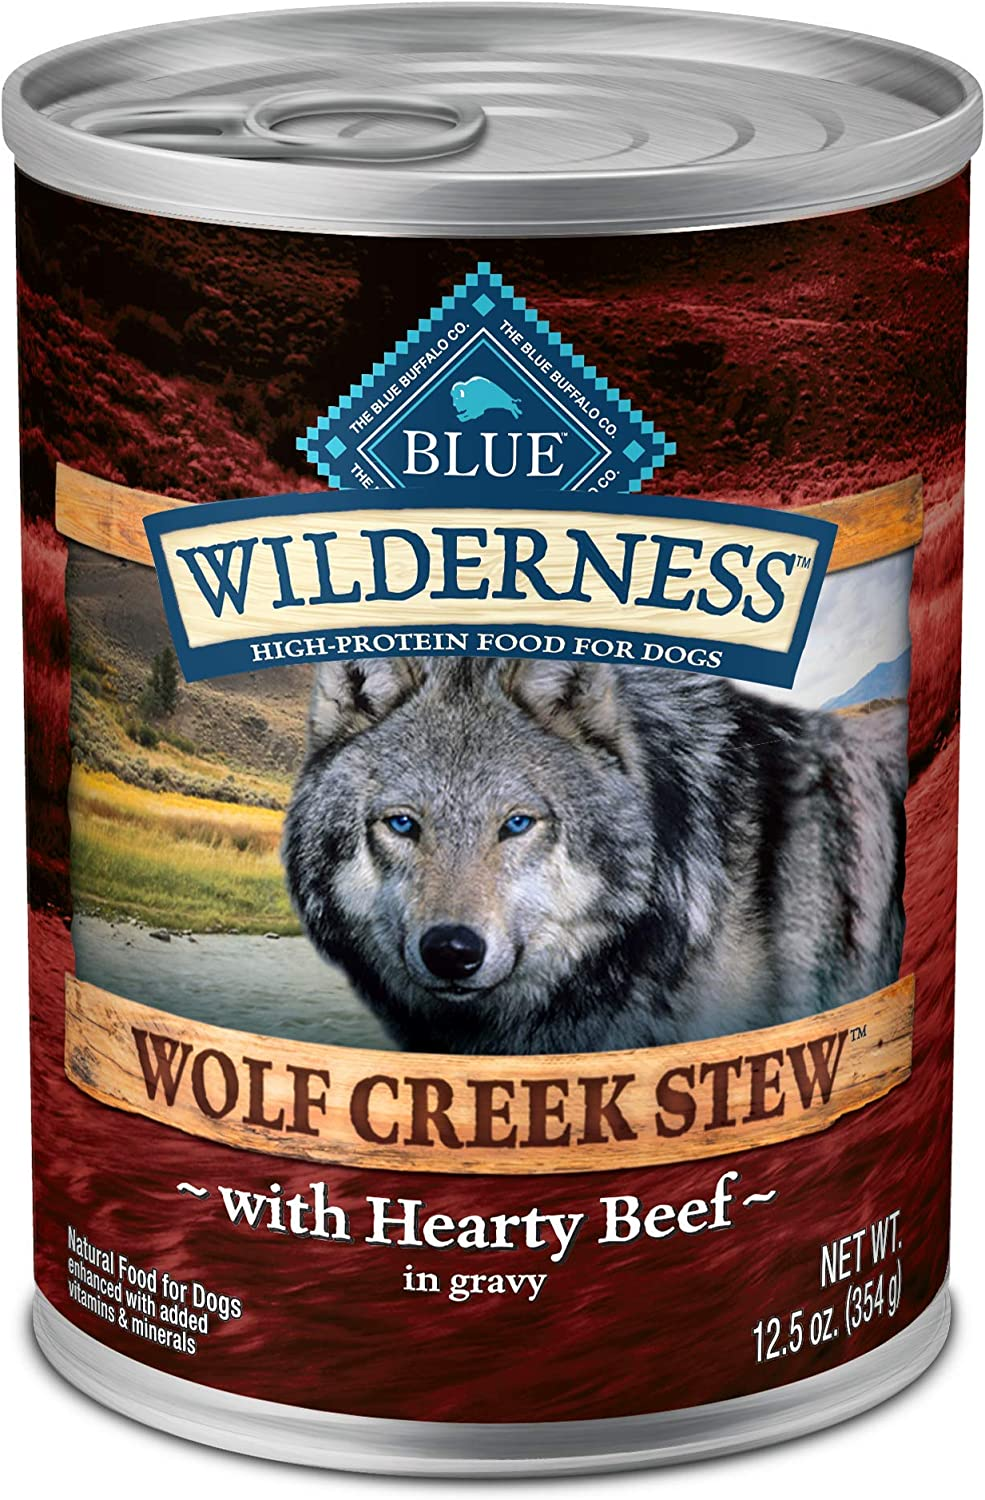 Blue Buffalo Wilderness Wolf Creek Stew High Protein Grain Free Natural Wet Dog Food, 12.5-oz can (Pack of 12)